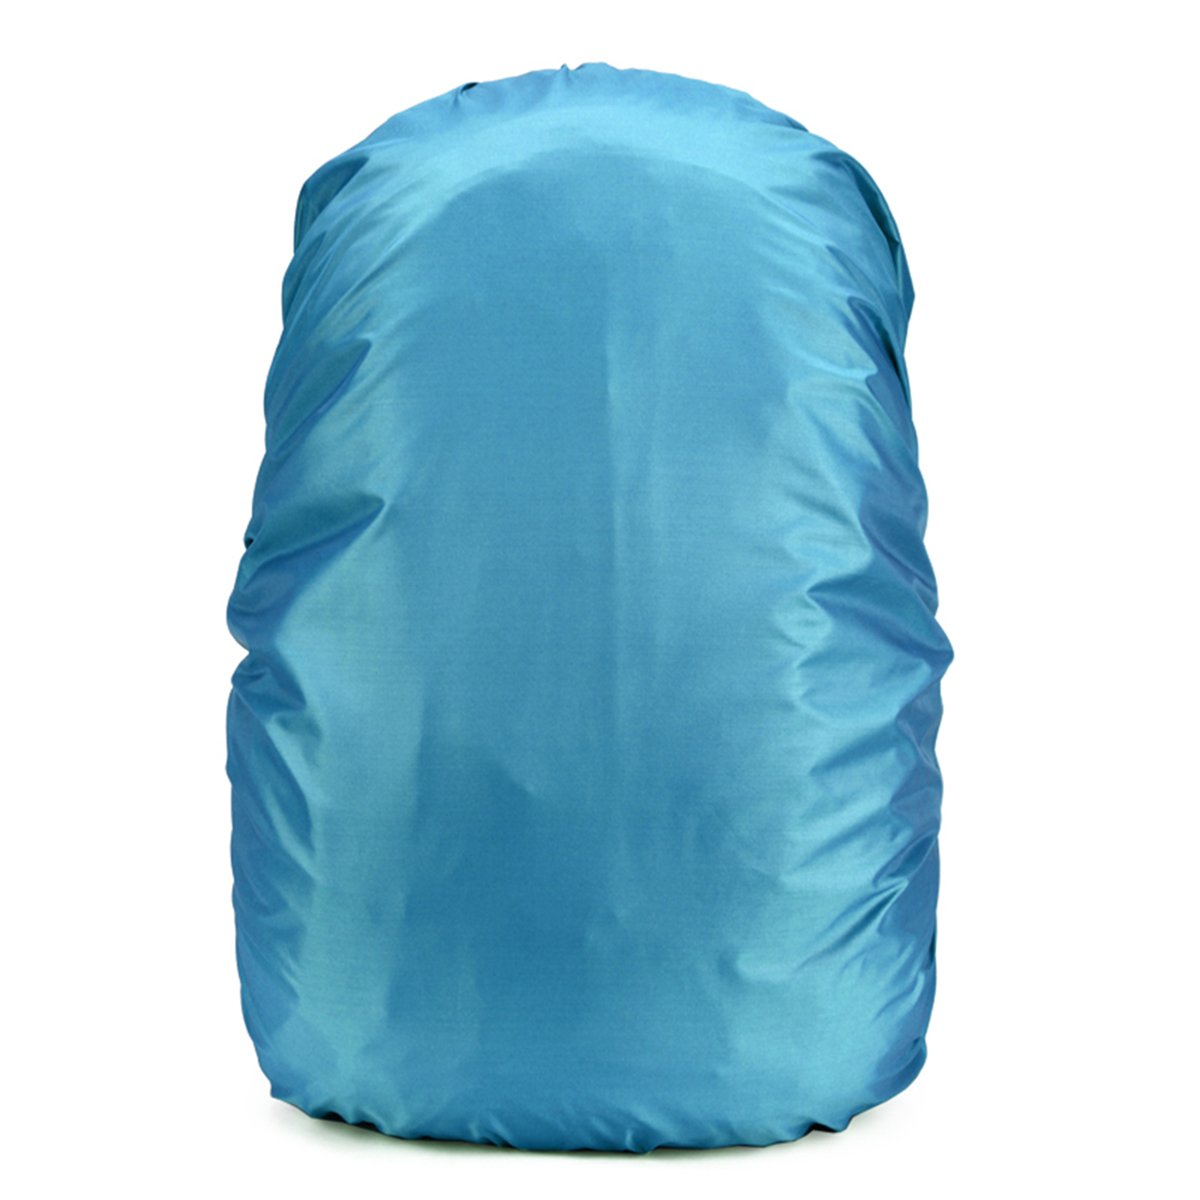 CUCKOO Nylon Waterproof Backpack Rain Cover Rucksack Water Resist Cover Lightweight Pack Cover for Hiking Camping Traveling Outdoor Activities(35L 45L 55-60L 70L 80L)